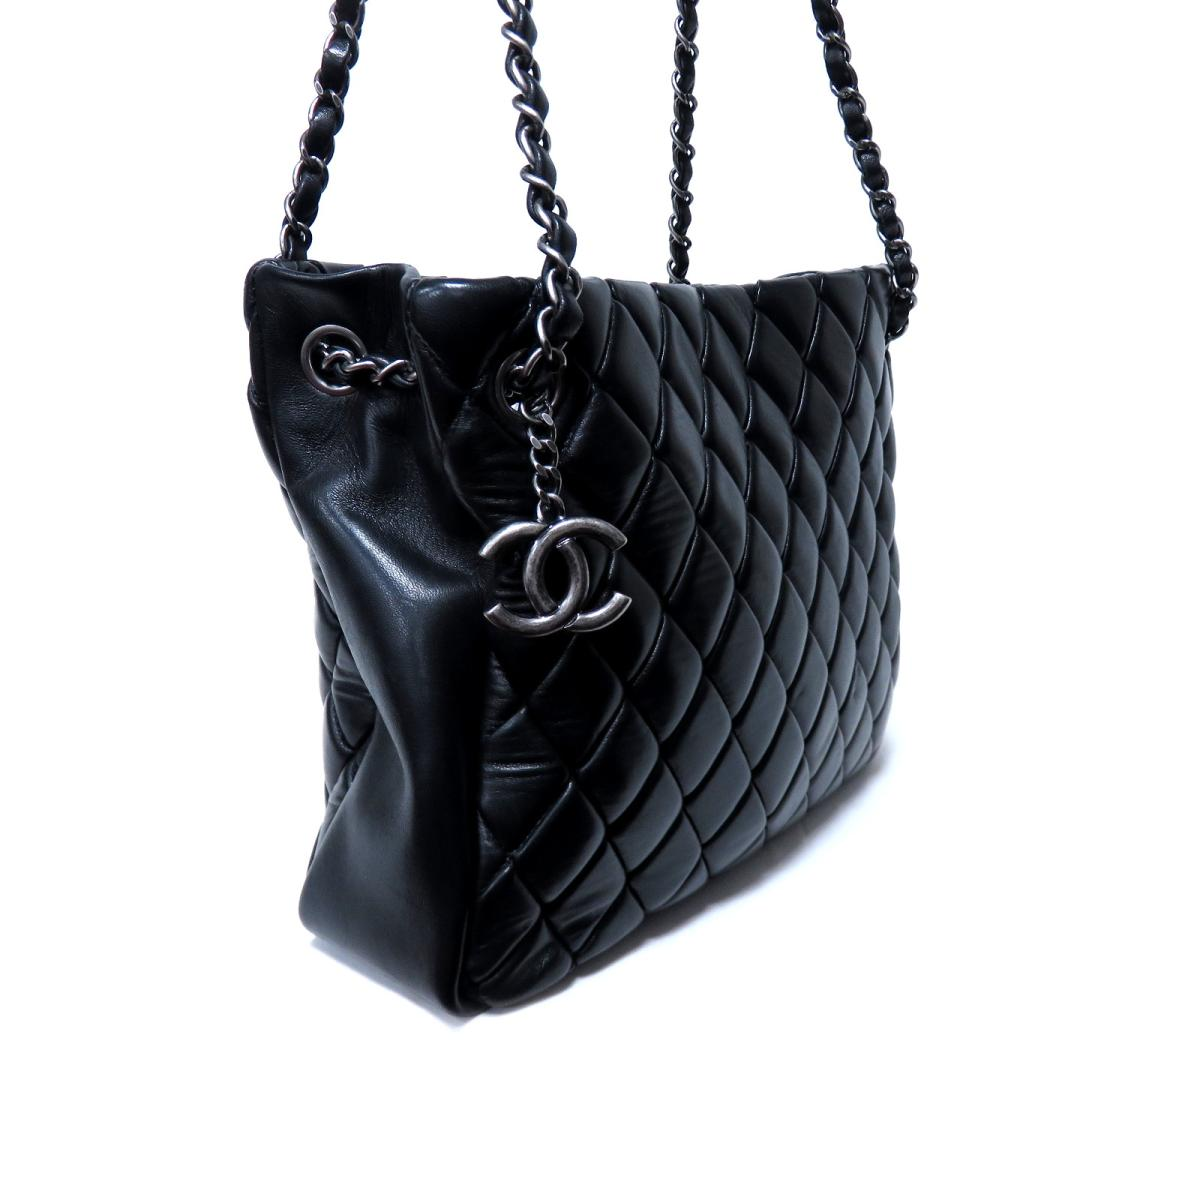 032be918e3814 (Free shipping) Auth CHANEL Matelasse Chain shoulder bag Calf skin leather  Black Used